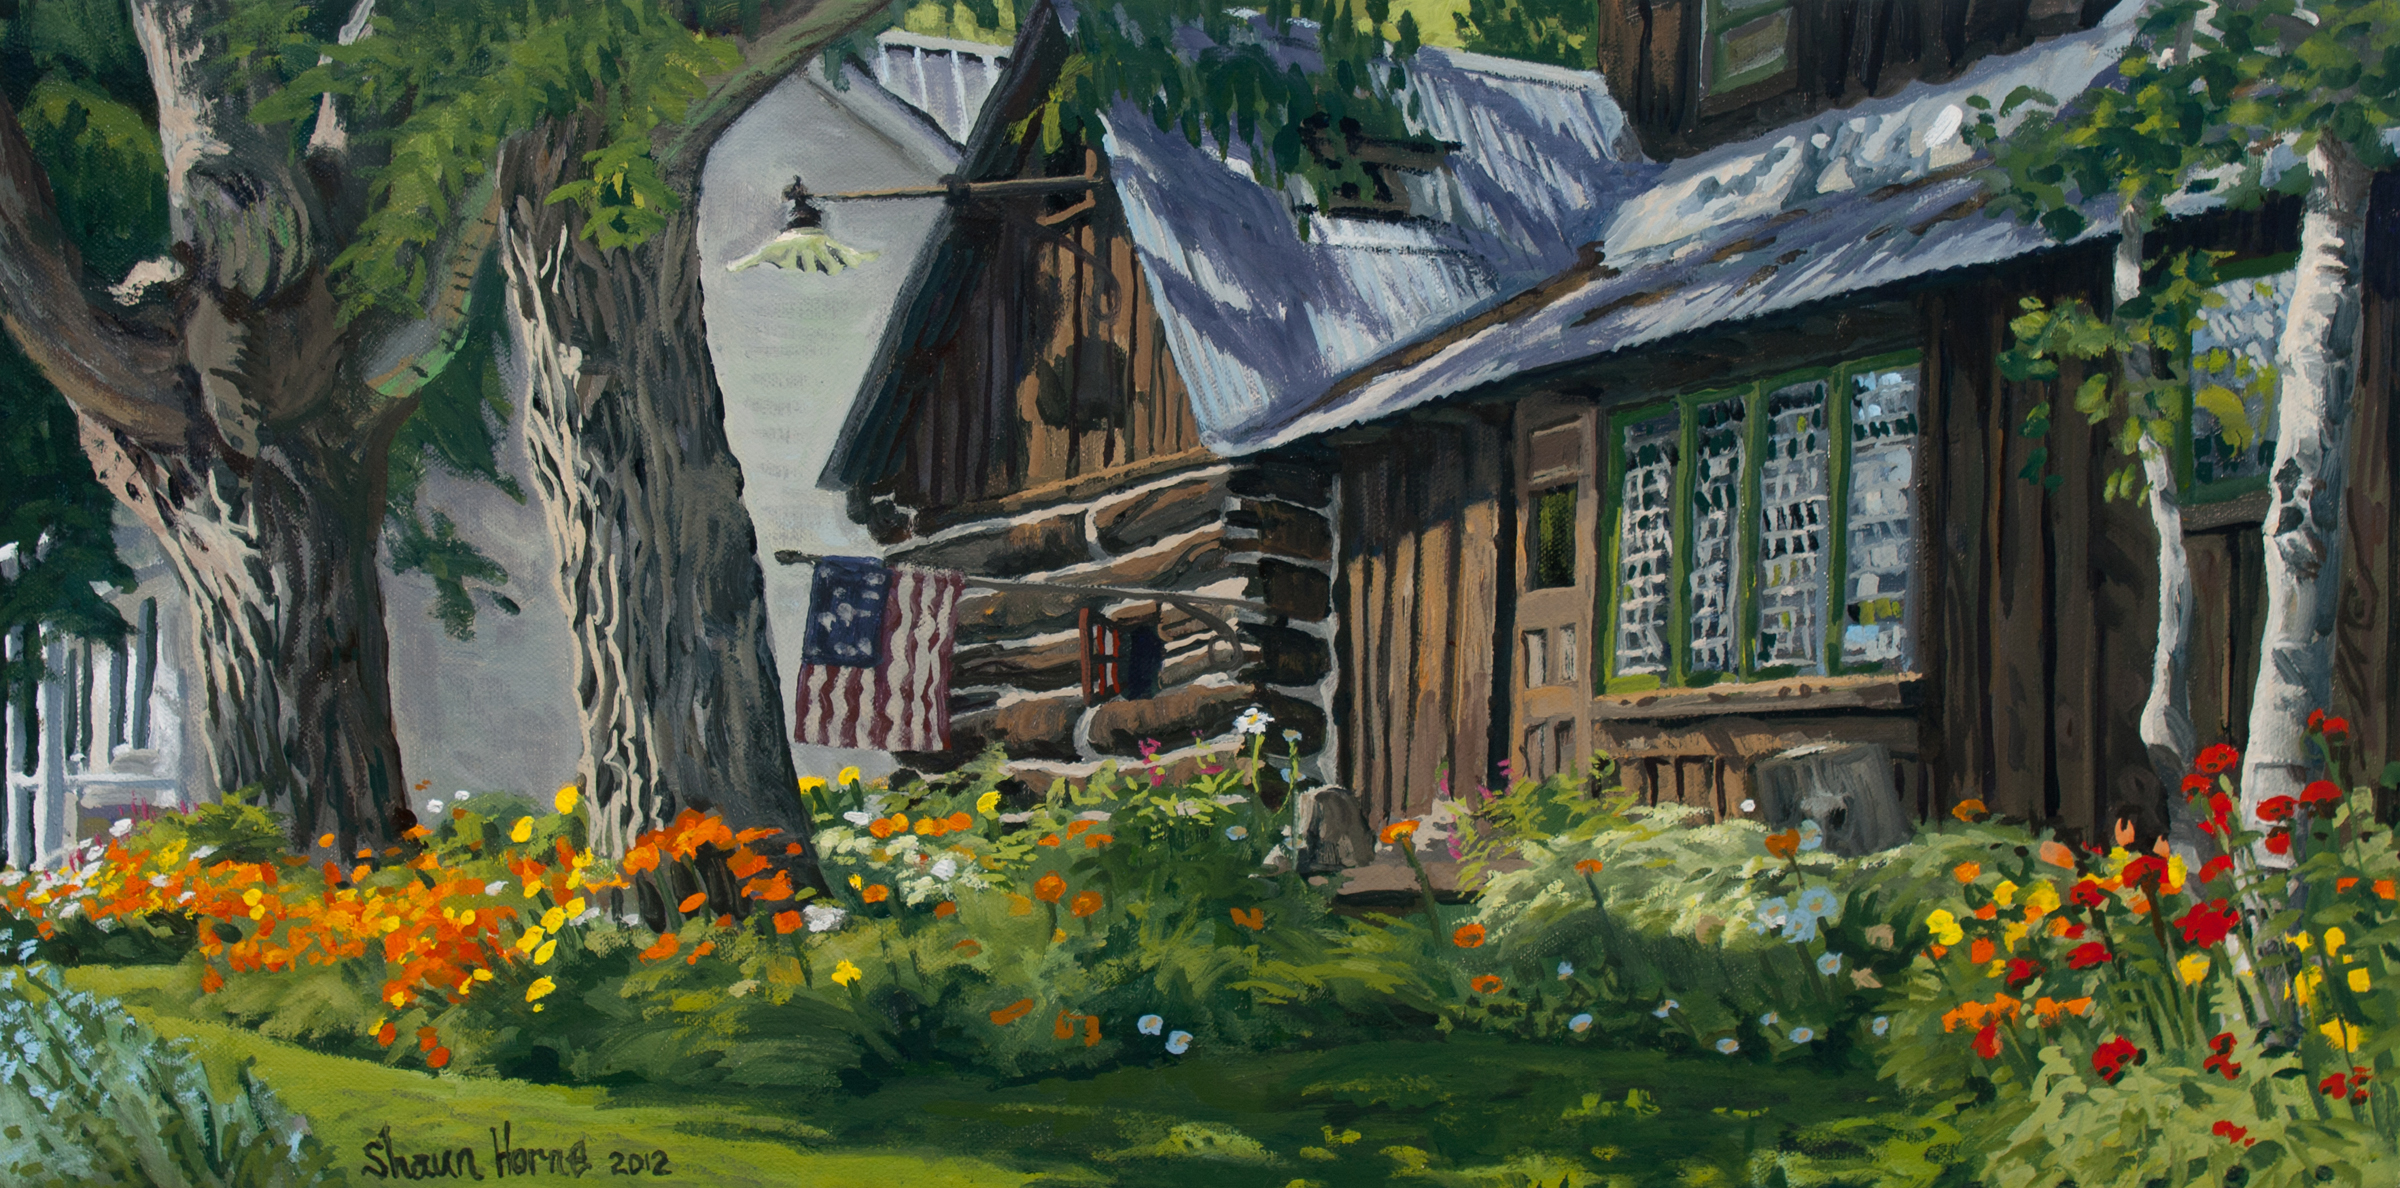 Shaun Horne, Brown House, small, Gilcrease entry, 2012